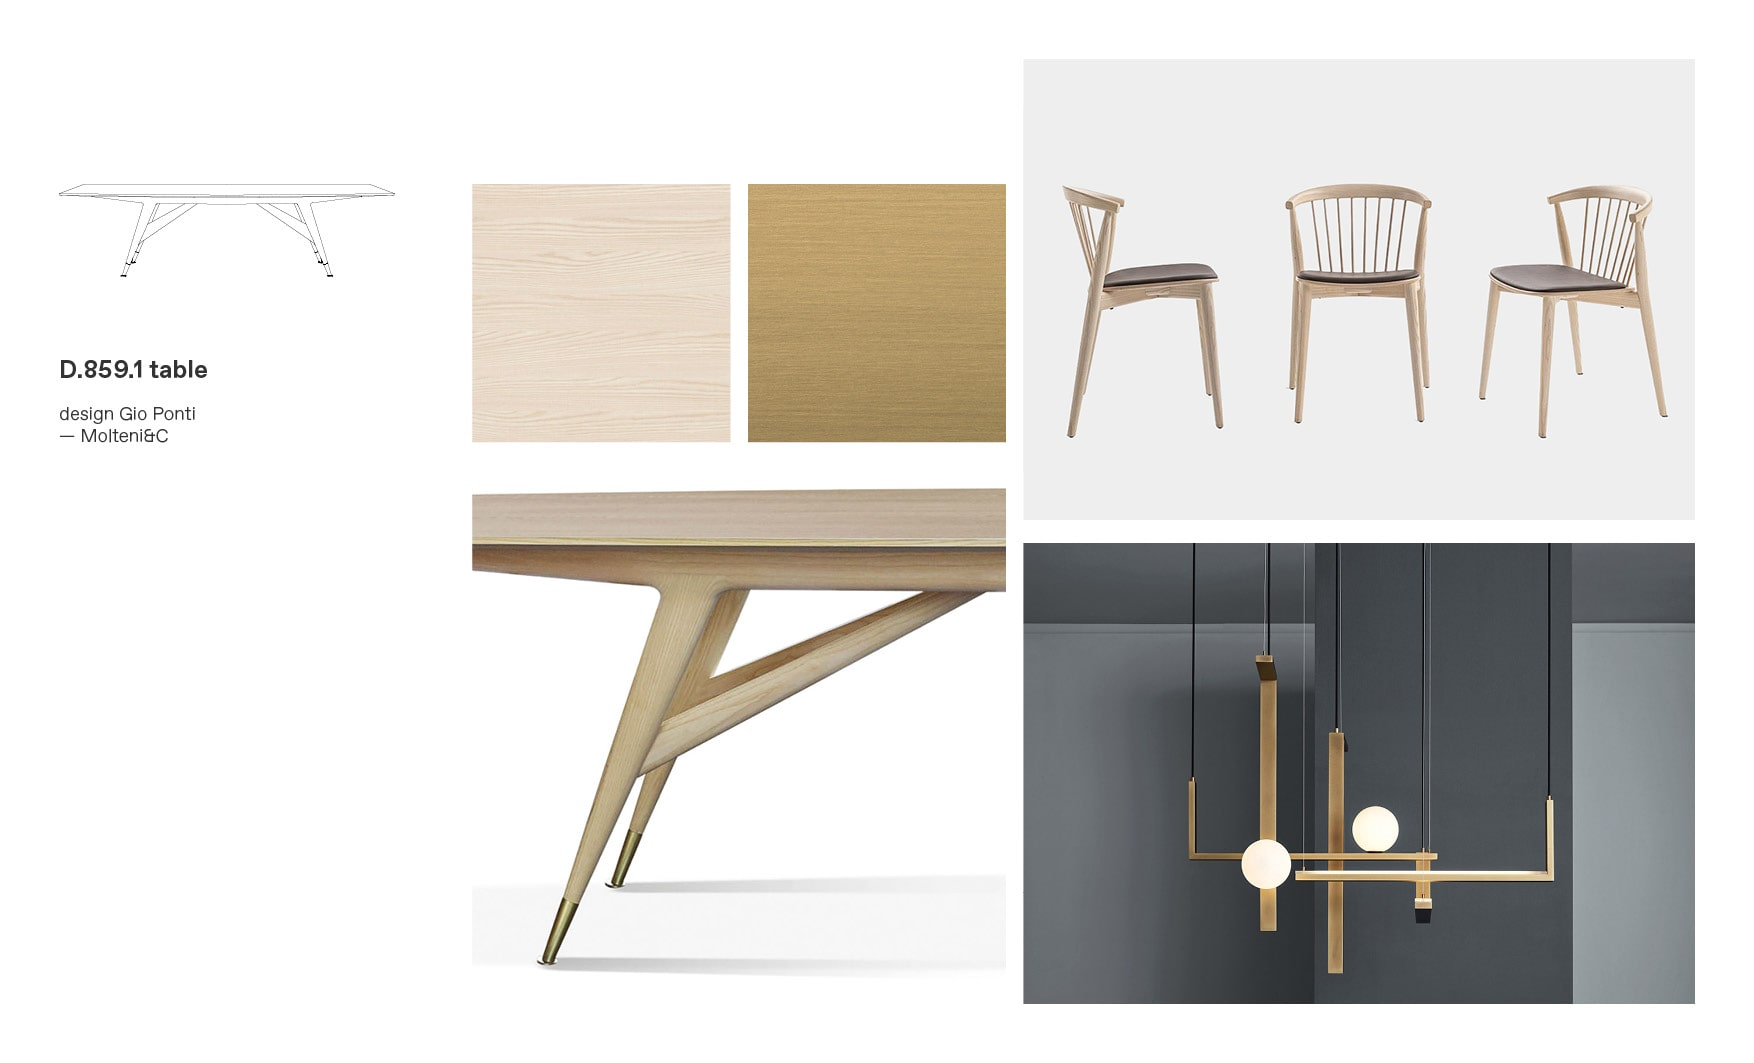 Molteni dining tables and D.859.1 Table designed by Gio Ponti, moodboard composition by Esperiri